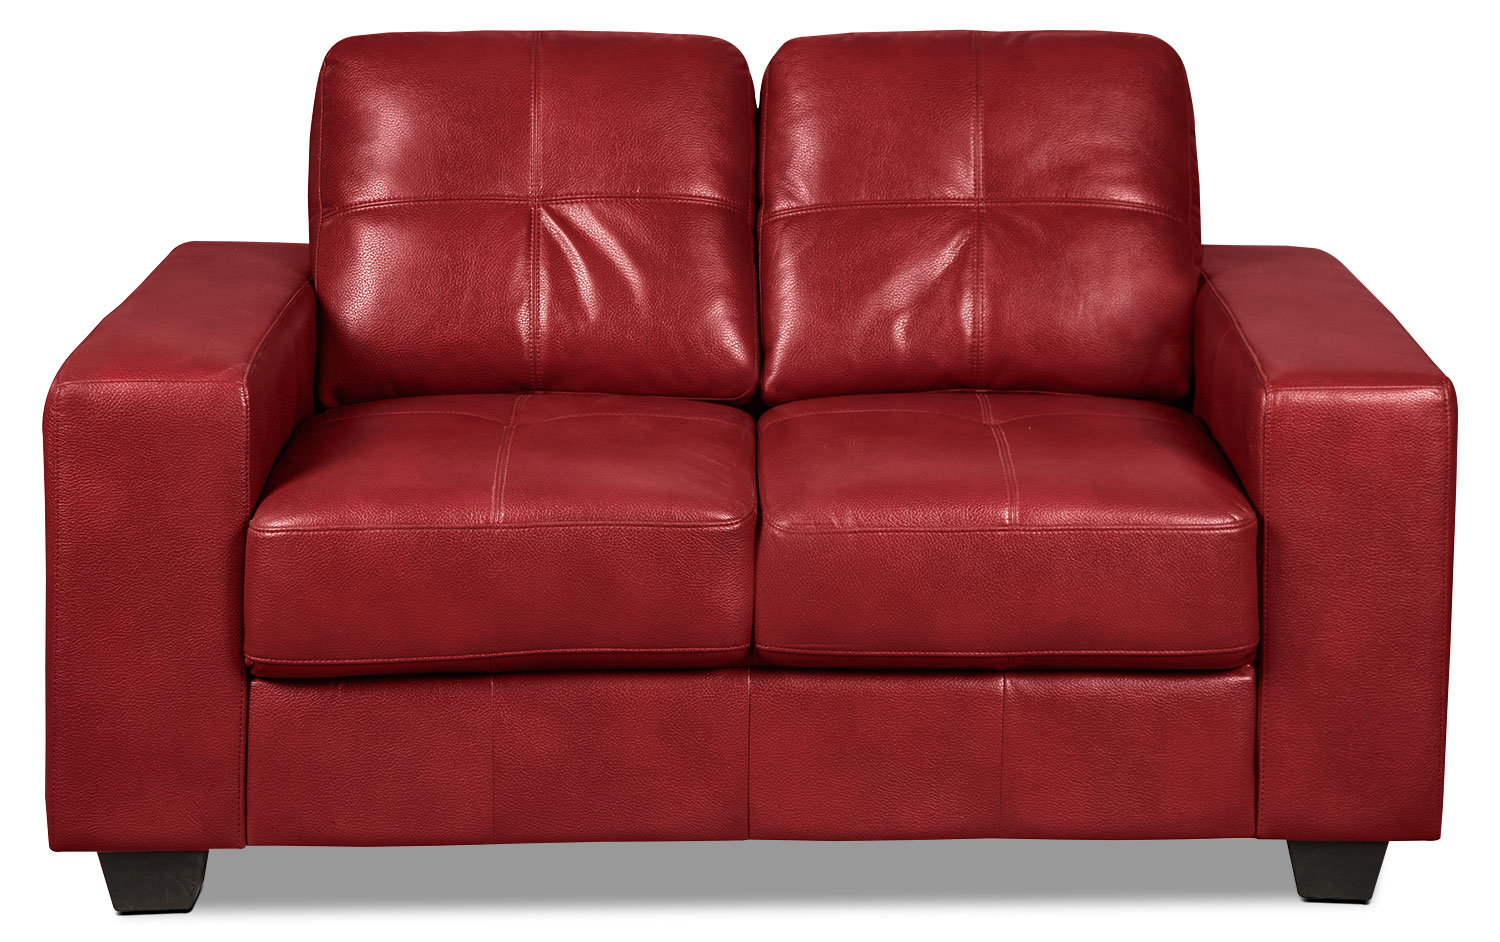 Costa Leather-Look Fabric Loveseat – Red